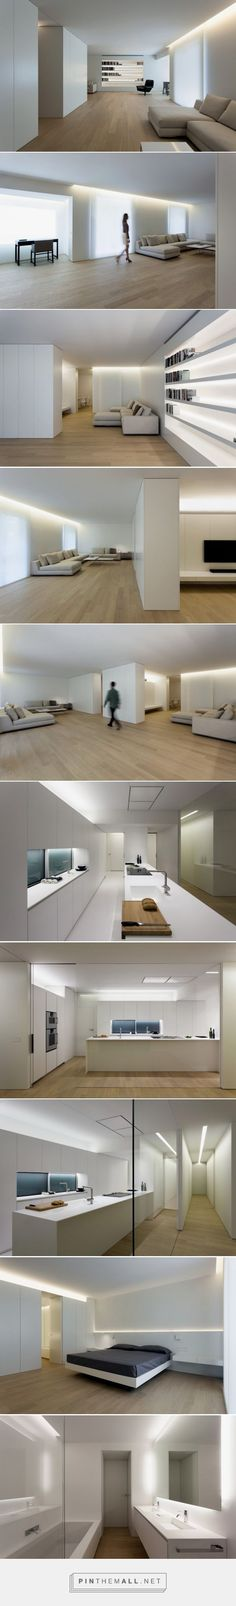 Interior architecture design - fran silvestre arquitectos renovates antiguo reino house a grouped images picture Pin Them All Minimalist Interior, Modern Interior, Interior And Exterior, Architecture Design, Architecture Awards, Architecture Colleges, Montreal Architecture, Computer Architecture, Enterprise Architecture